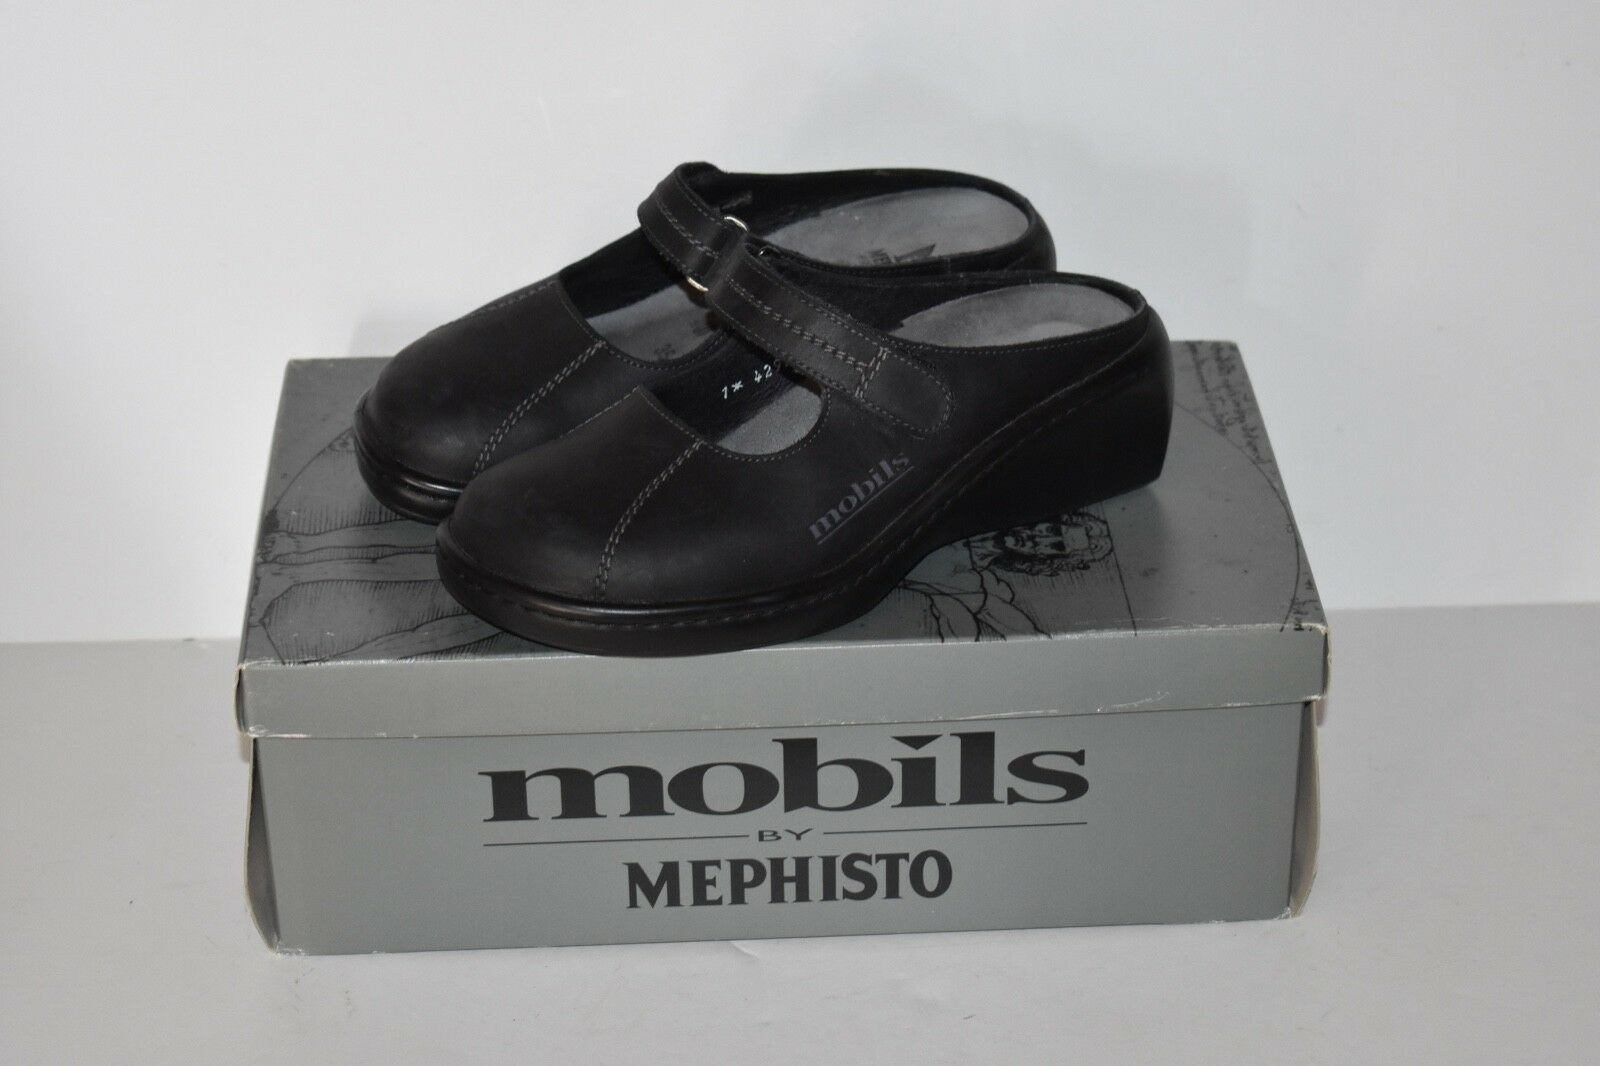 Mephisto Mobils donna's Dimensione 5 Slip On Slide Mary Jane Comfort scarpe